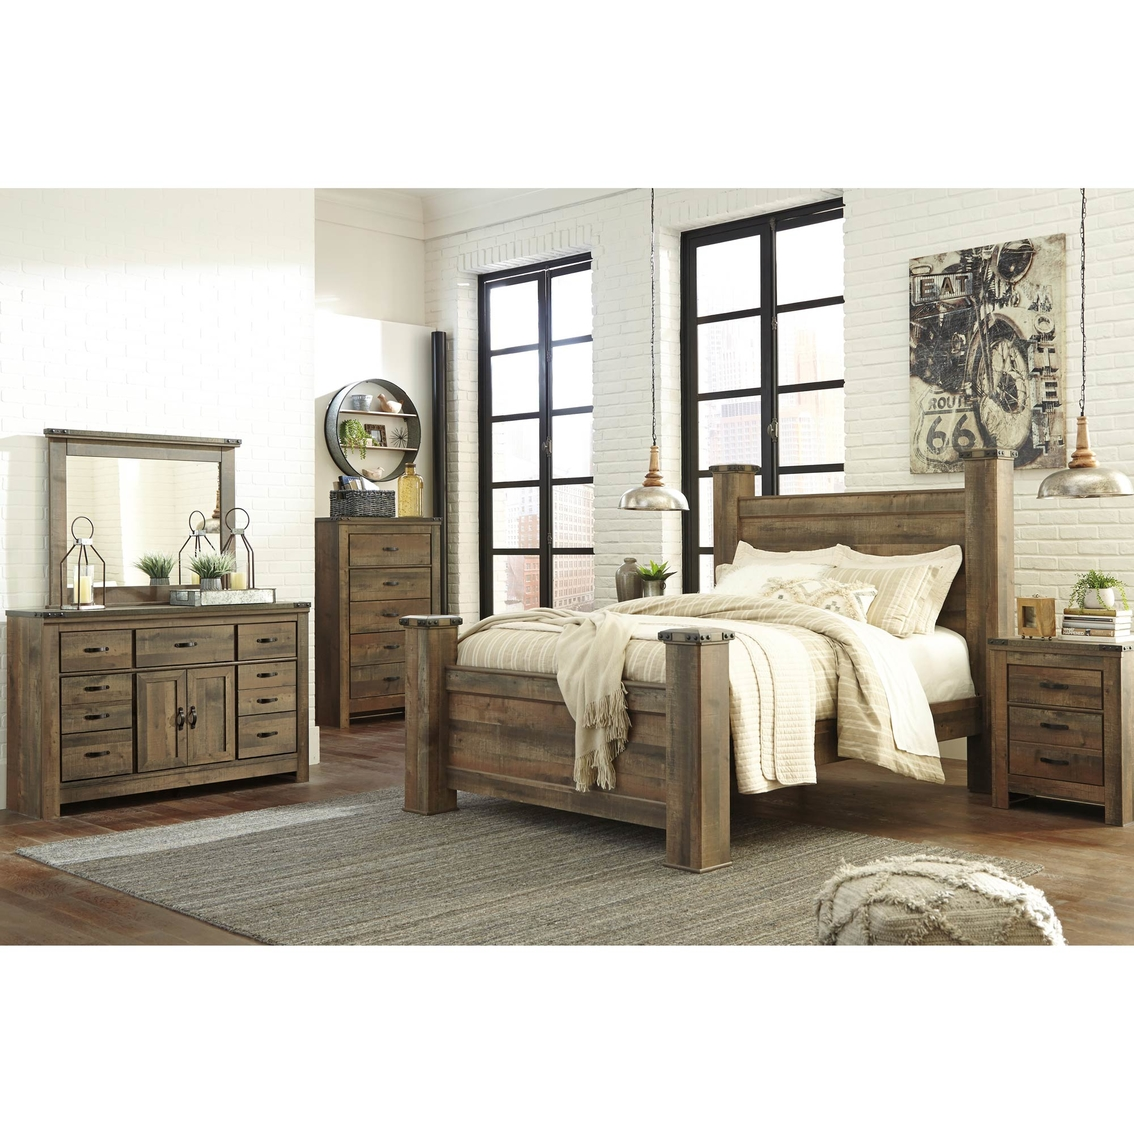 Ashley Trinell Poster Bed 5 Pc. Set | Bedroom Sets | Home ...